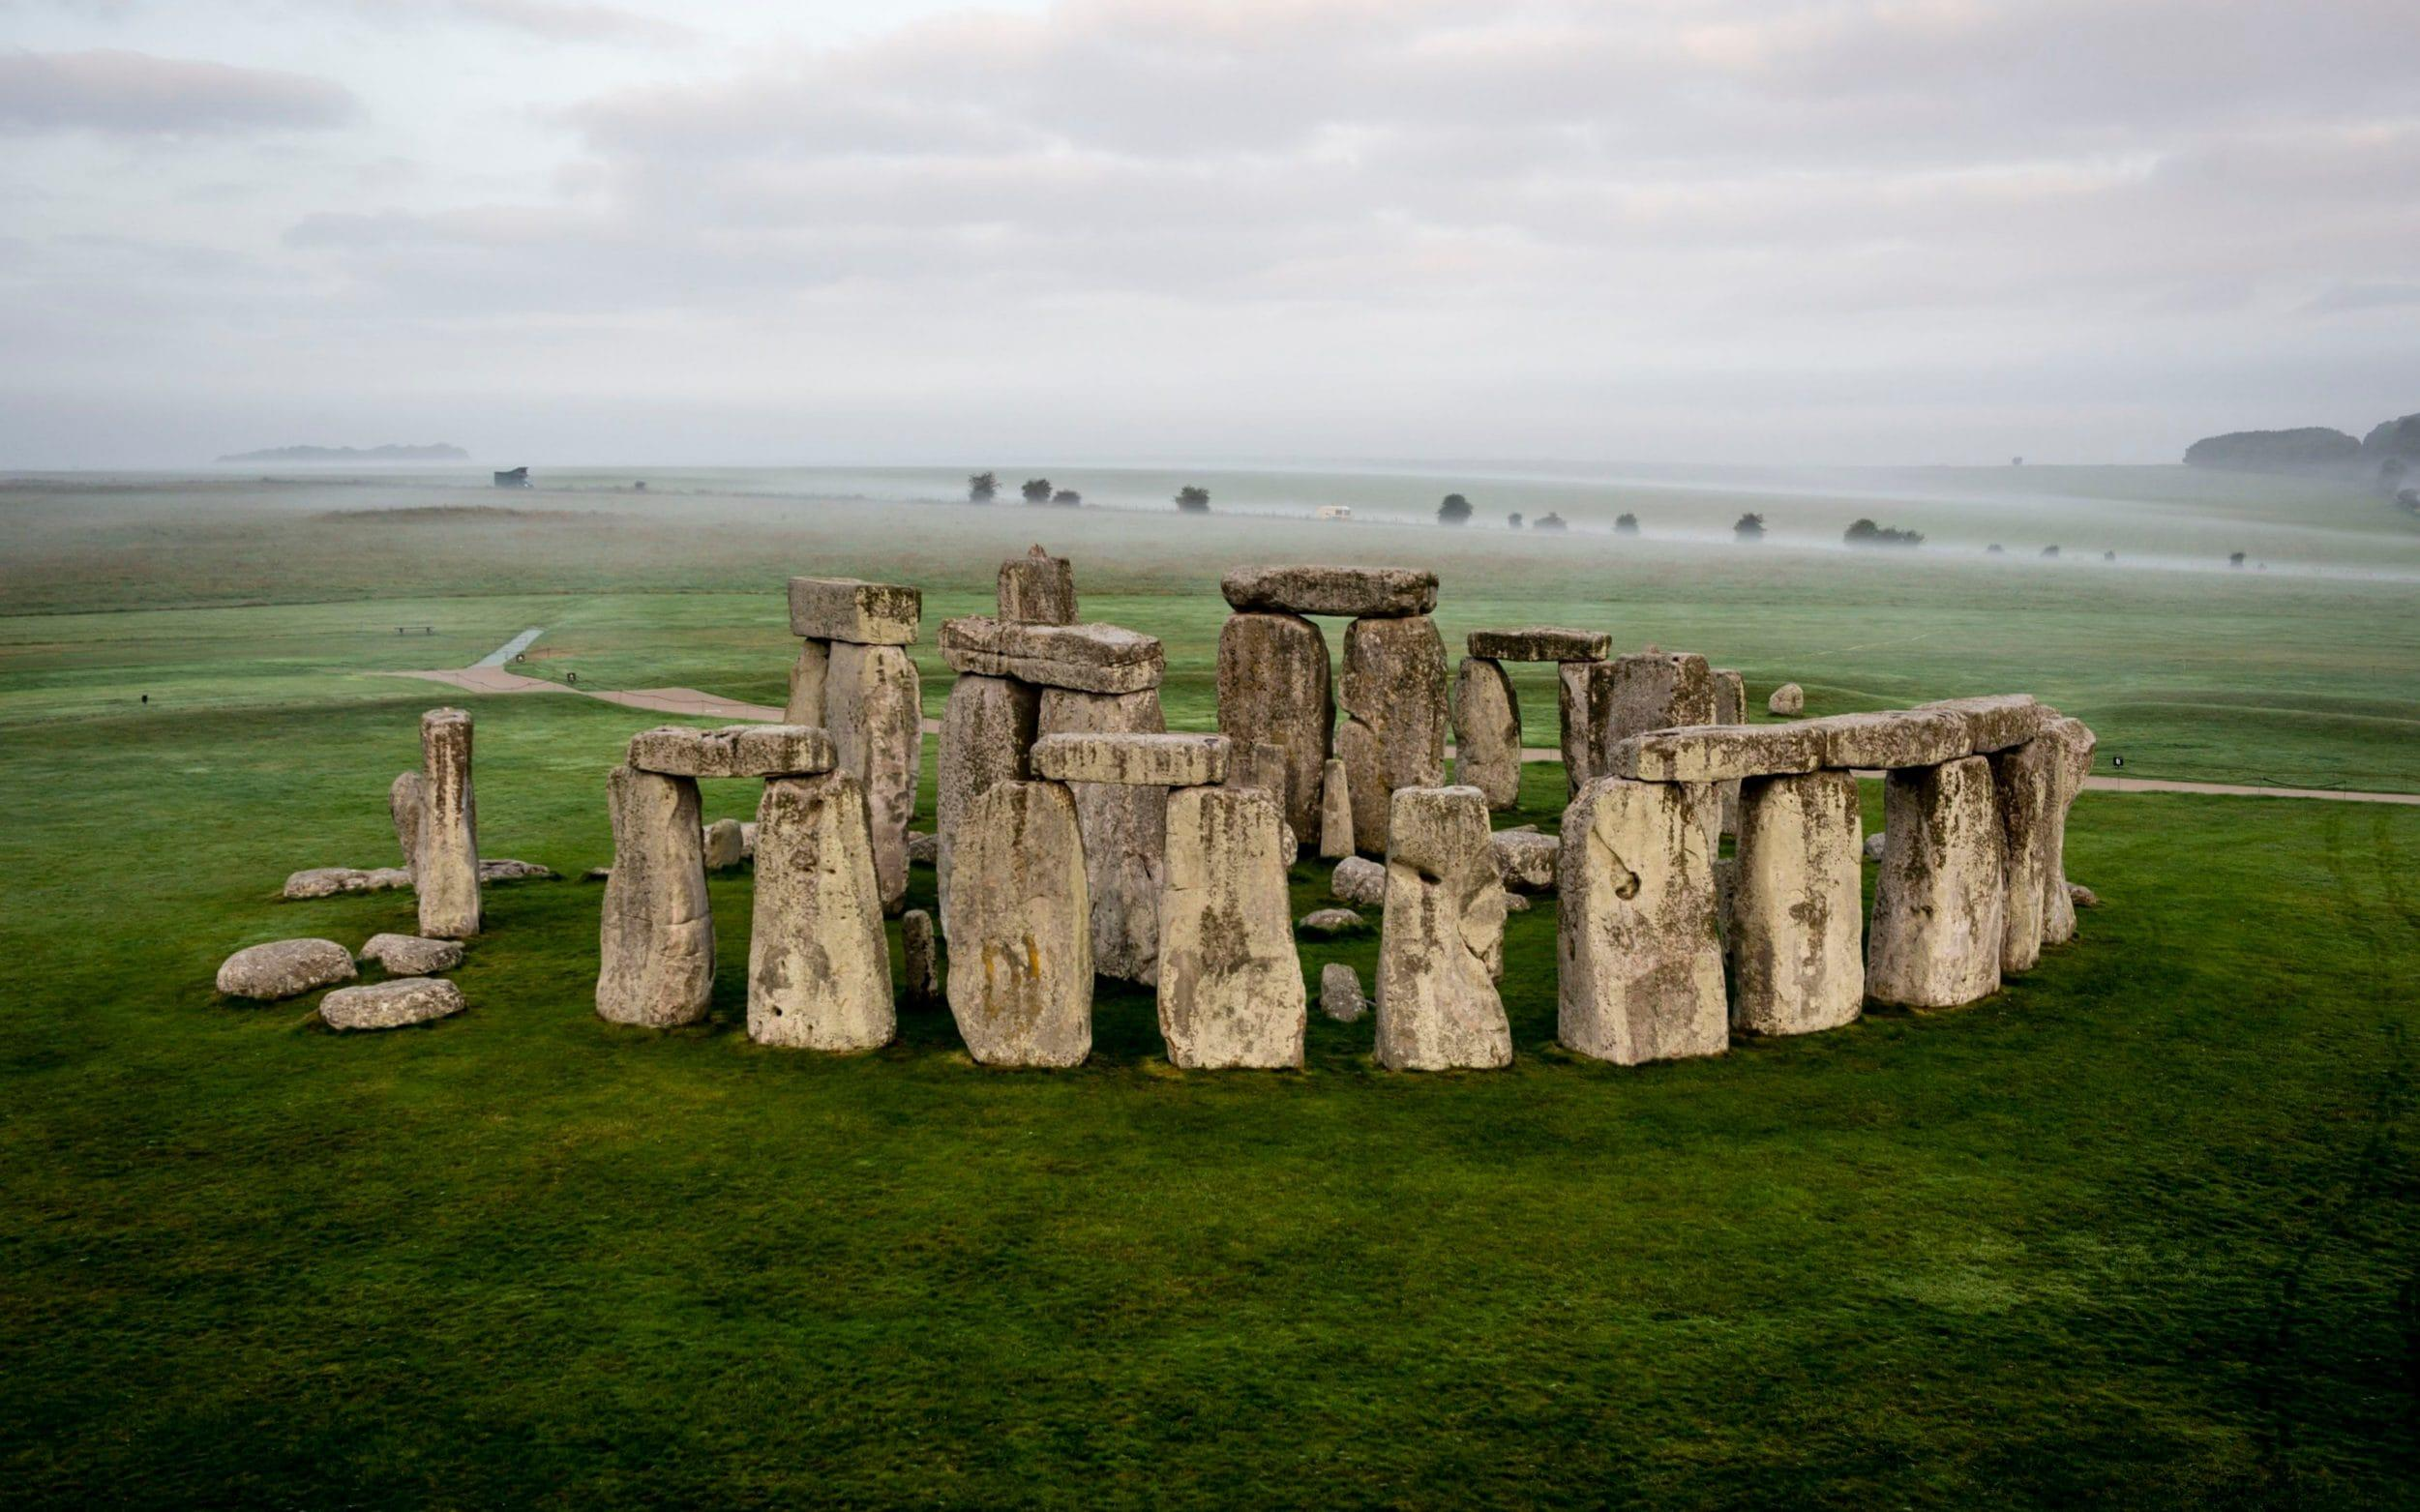 Has the mystery of Stonehenge been solved?